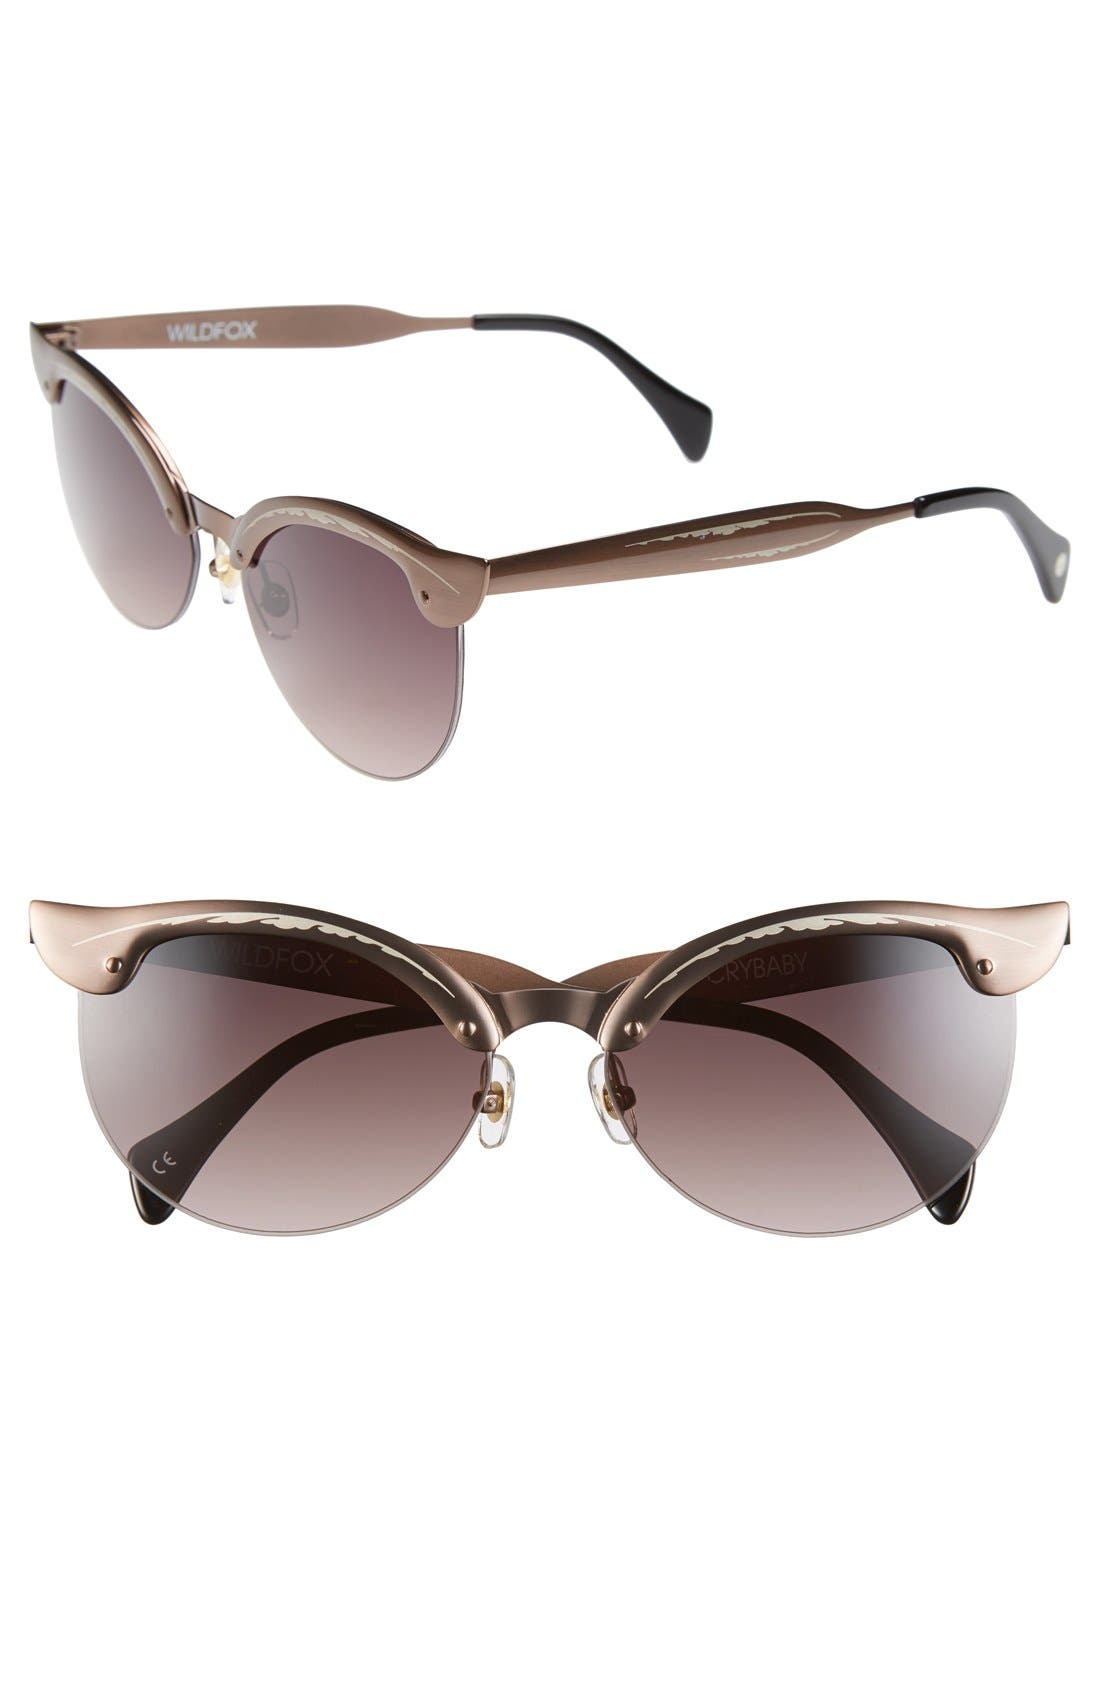 Alternate Image 1 Selected - Wildfox 'Crybaby' 57mm Sunglasses